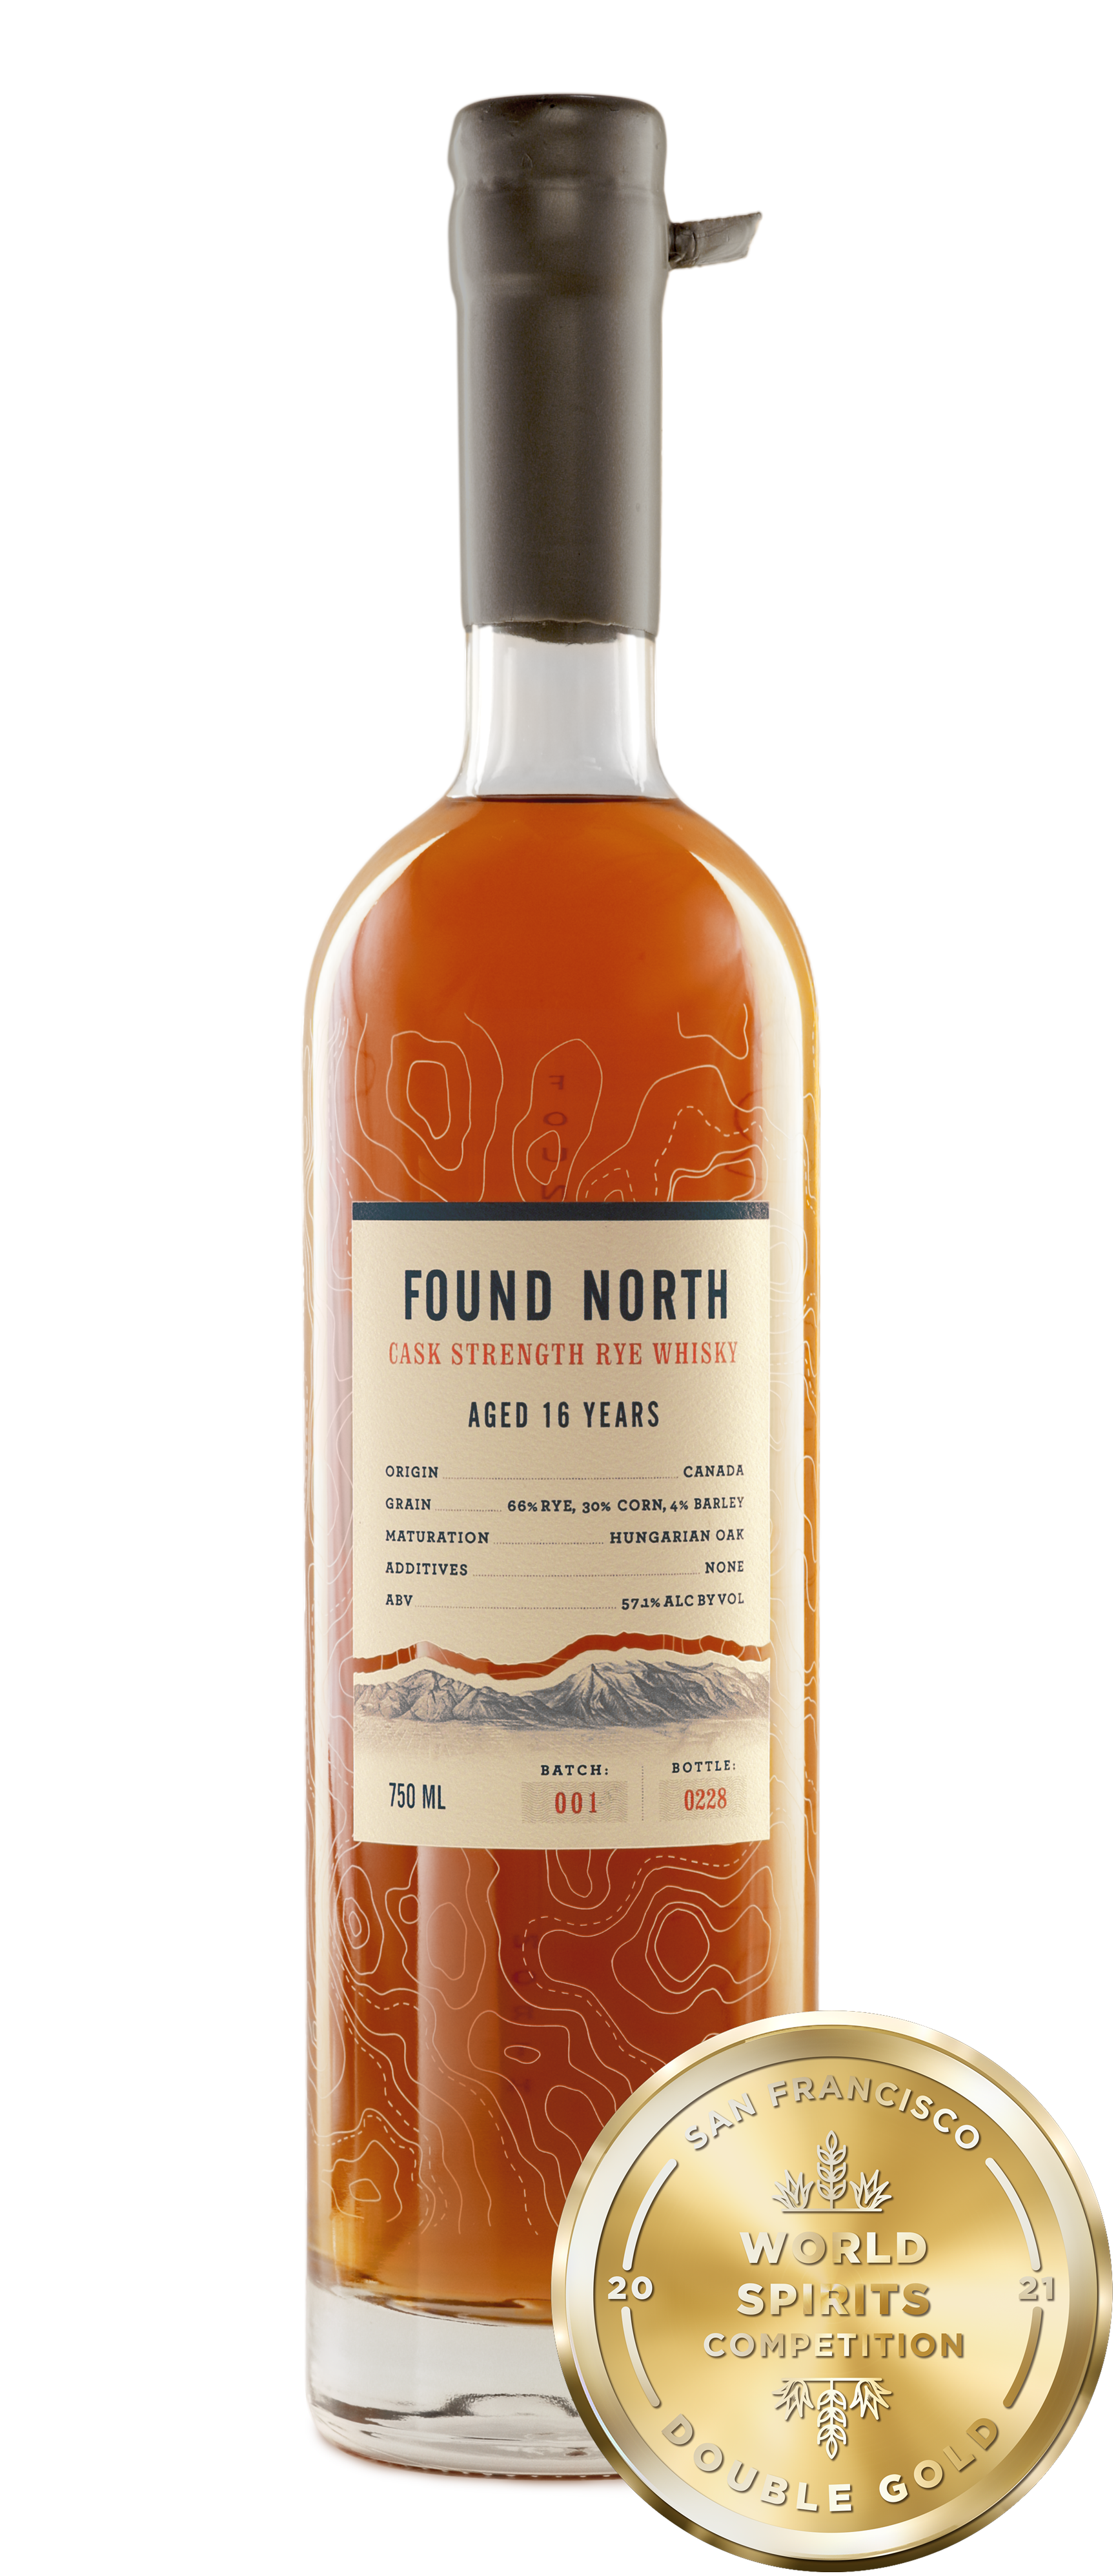 Image of Found North Batch 001 Cask Strength Rye Whisky with San Francisco World Spirits Competition Double Gold Medal